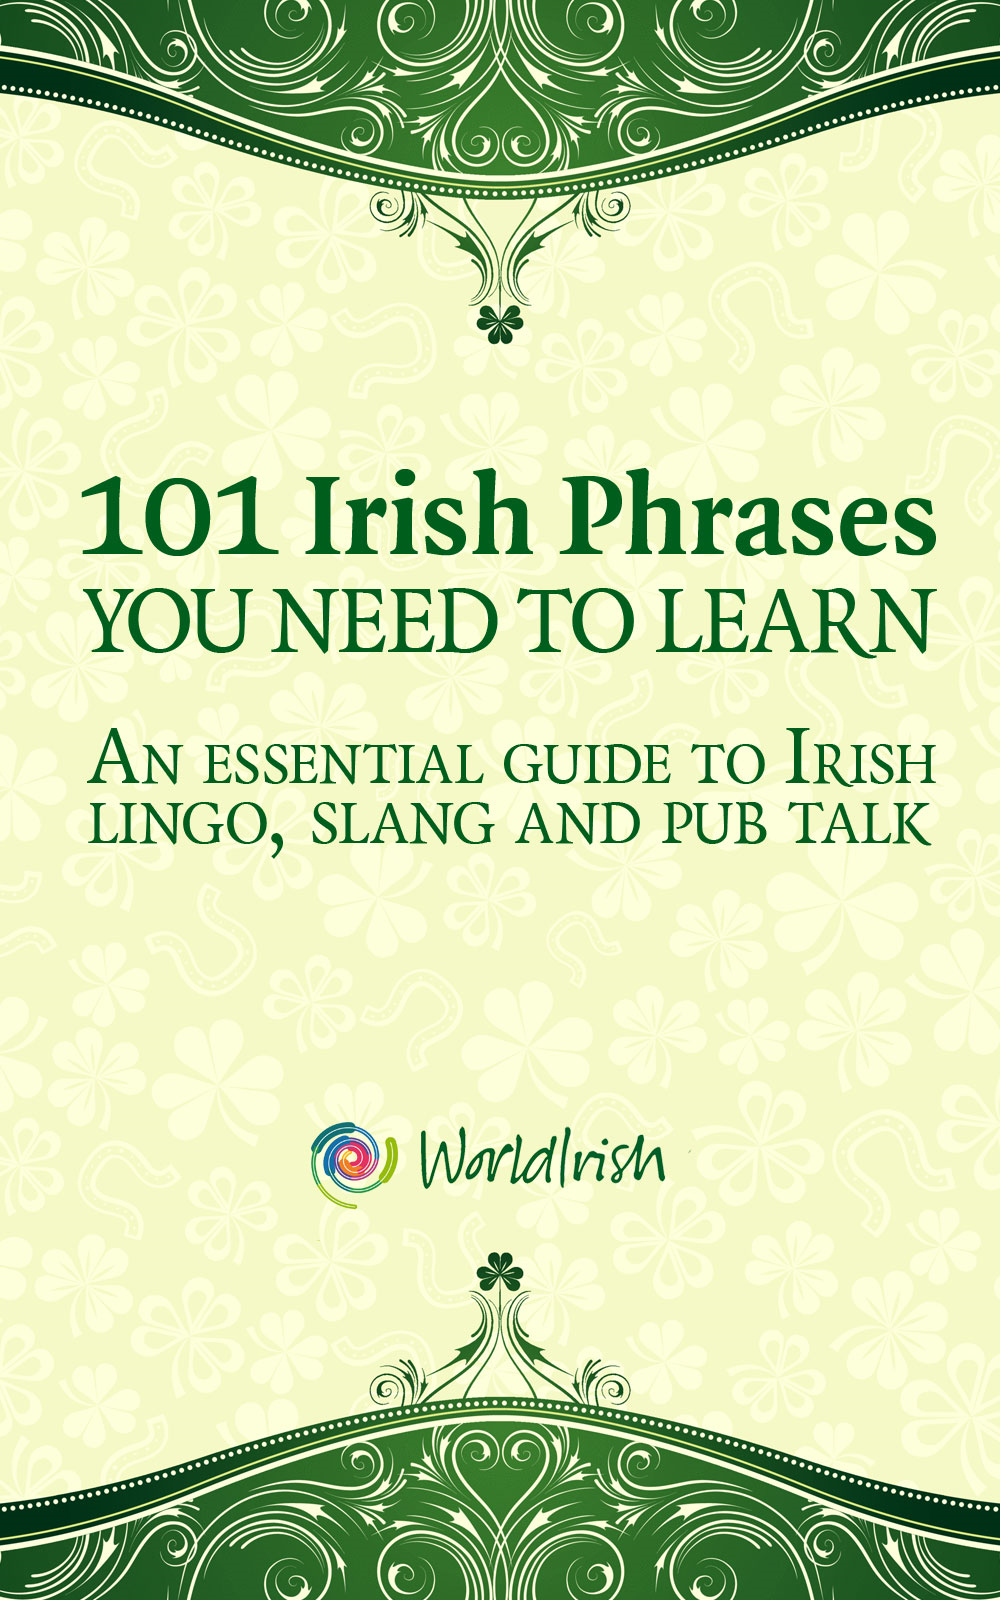 101 Irish Phrases You Need To Know